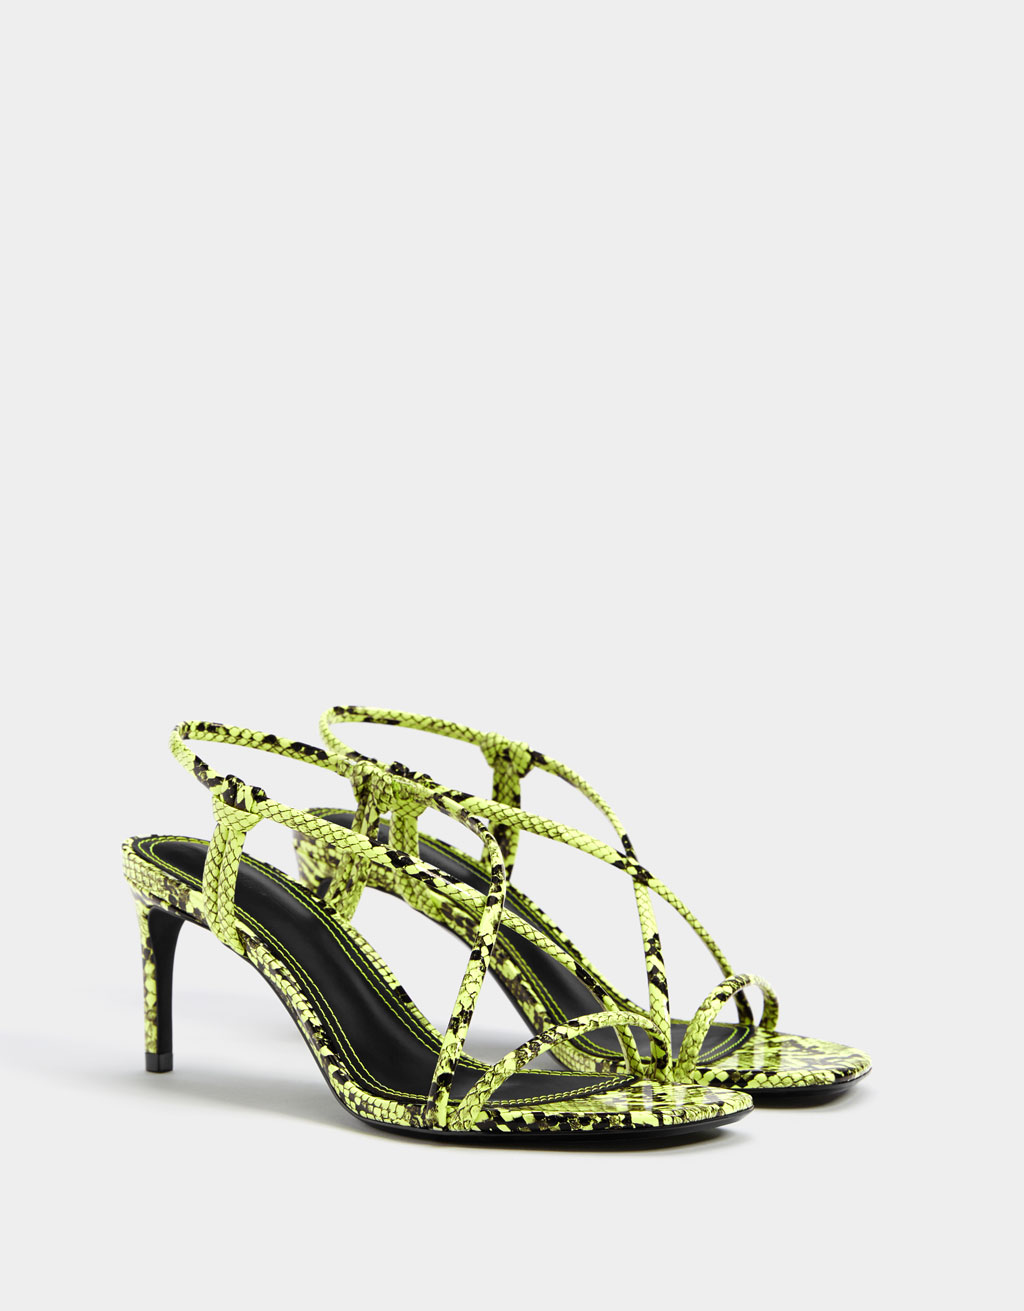 Animal print heeled sandals with tubular straps